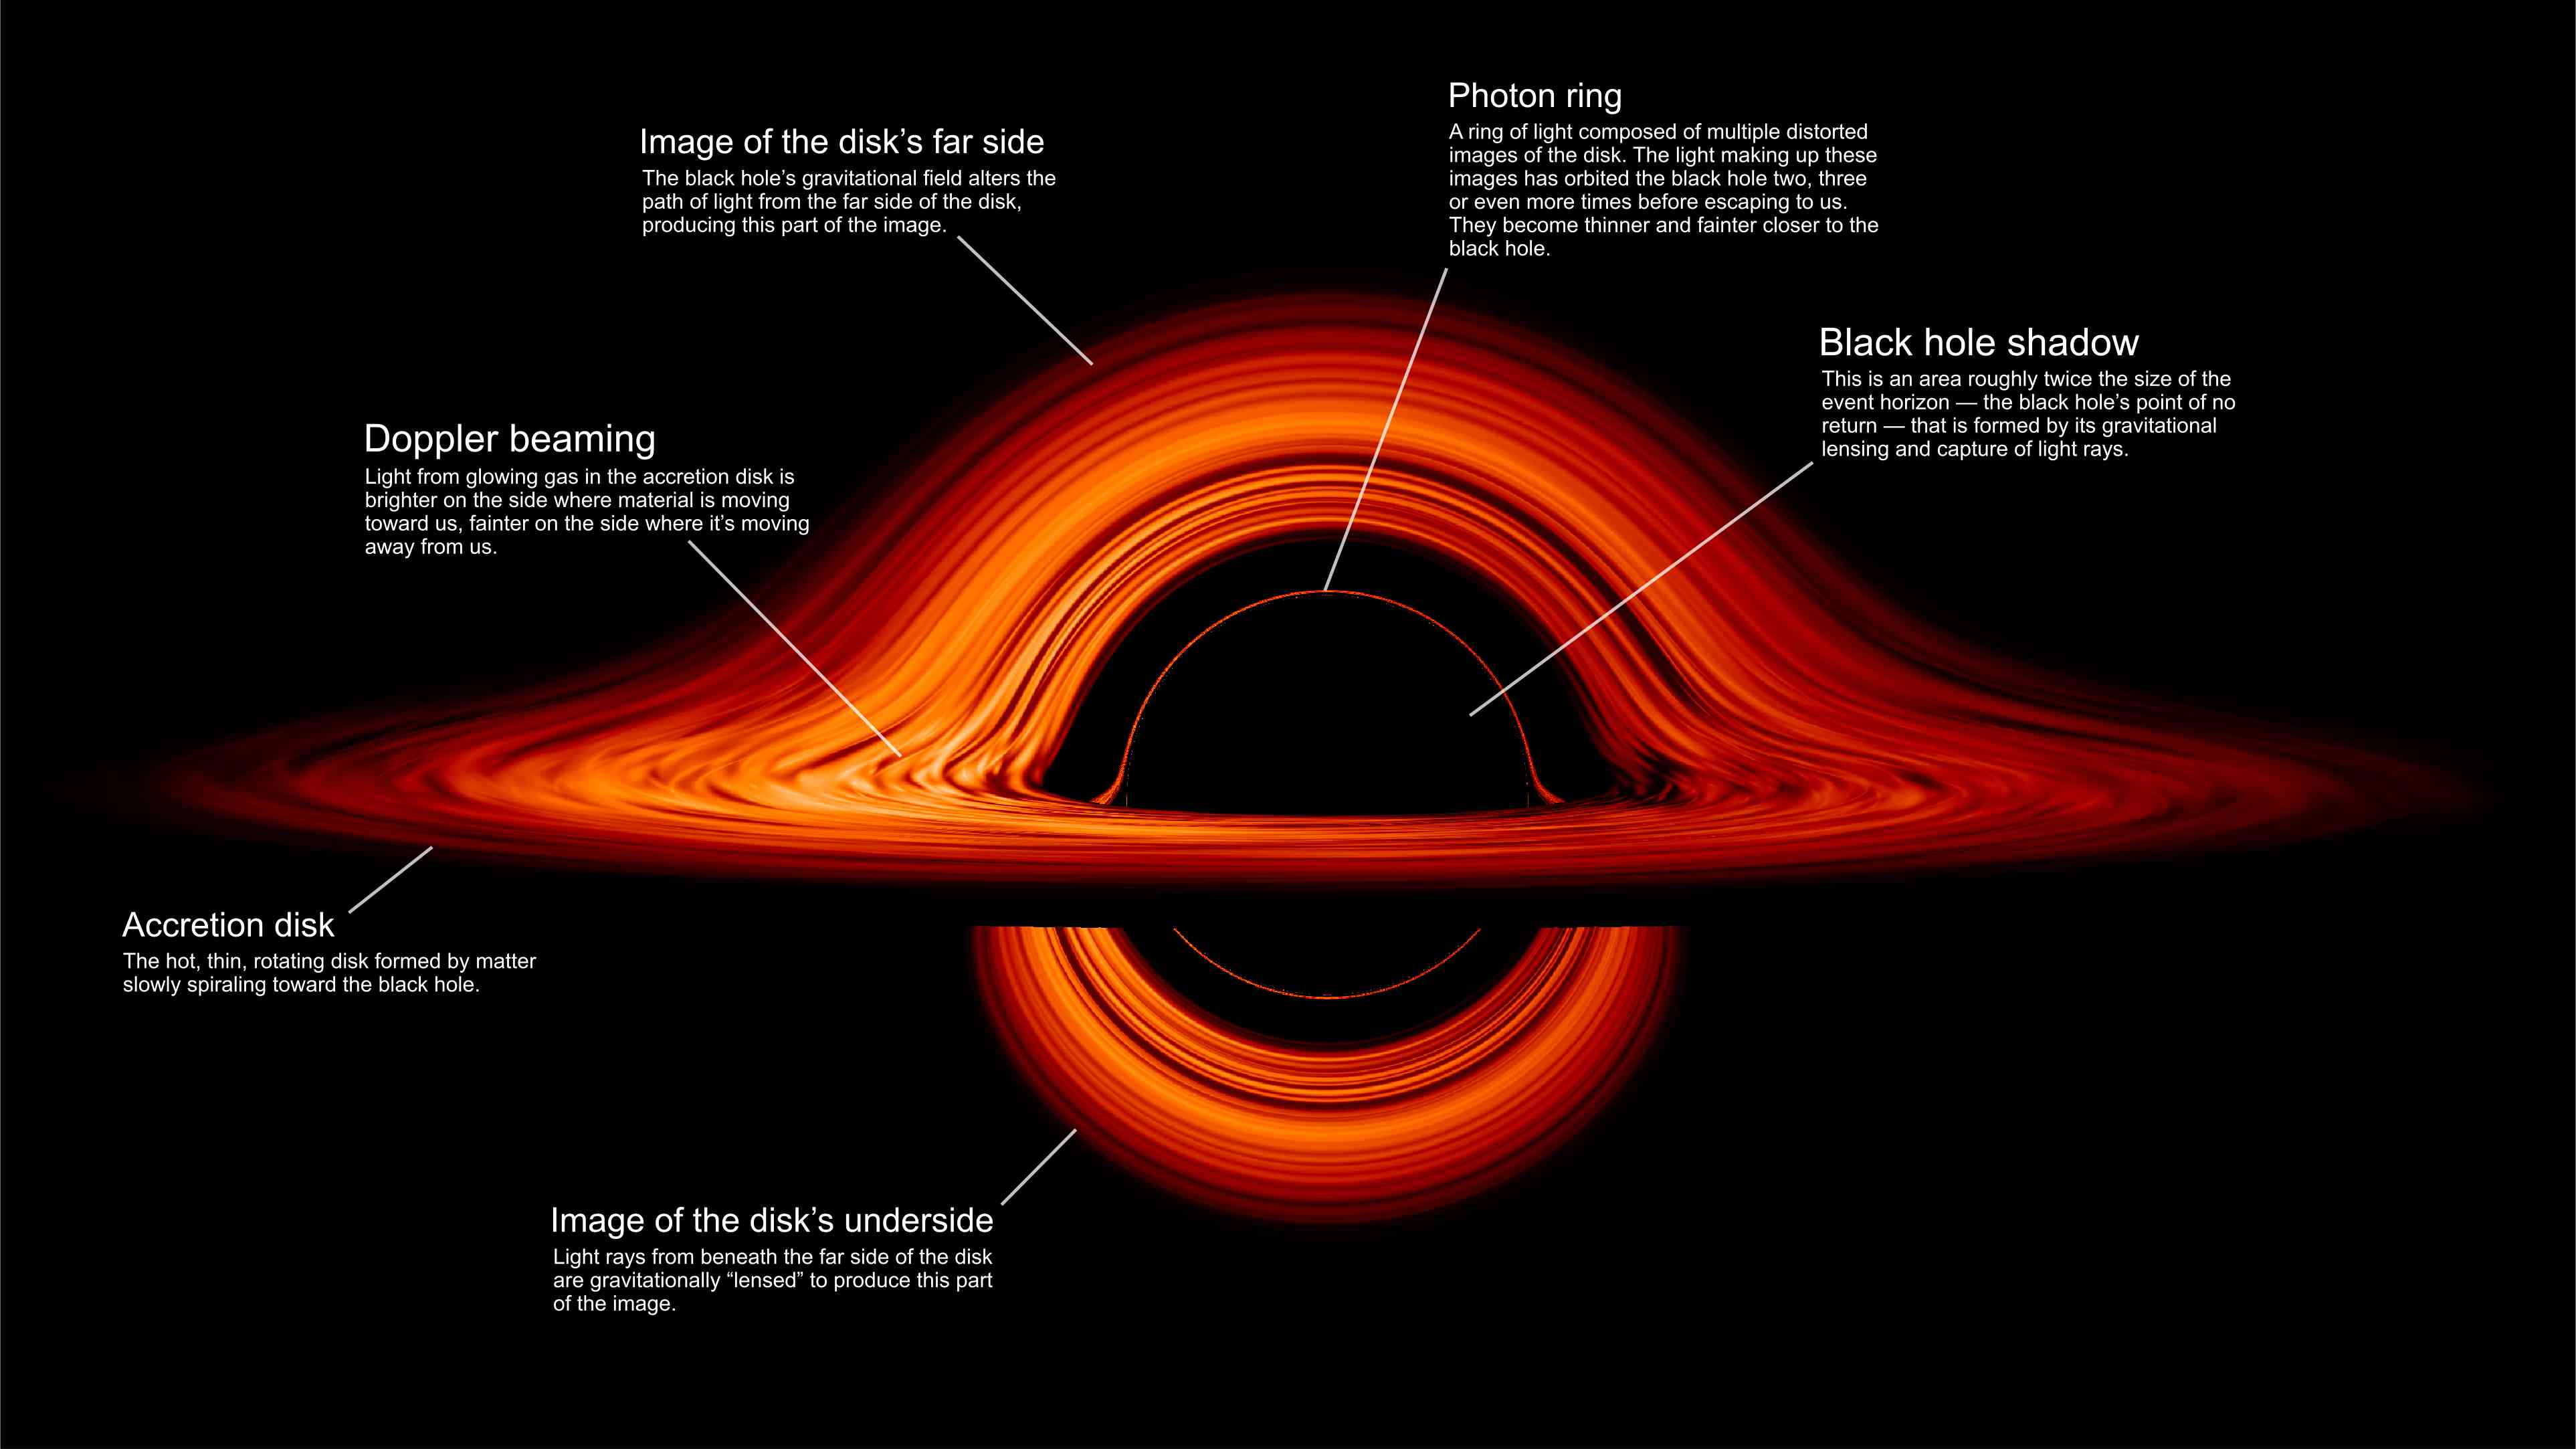 The various elements of a black hole explained.